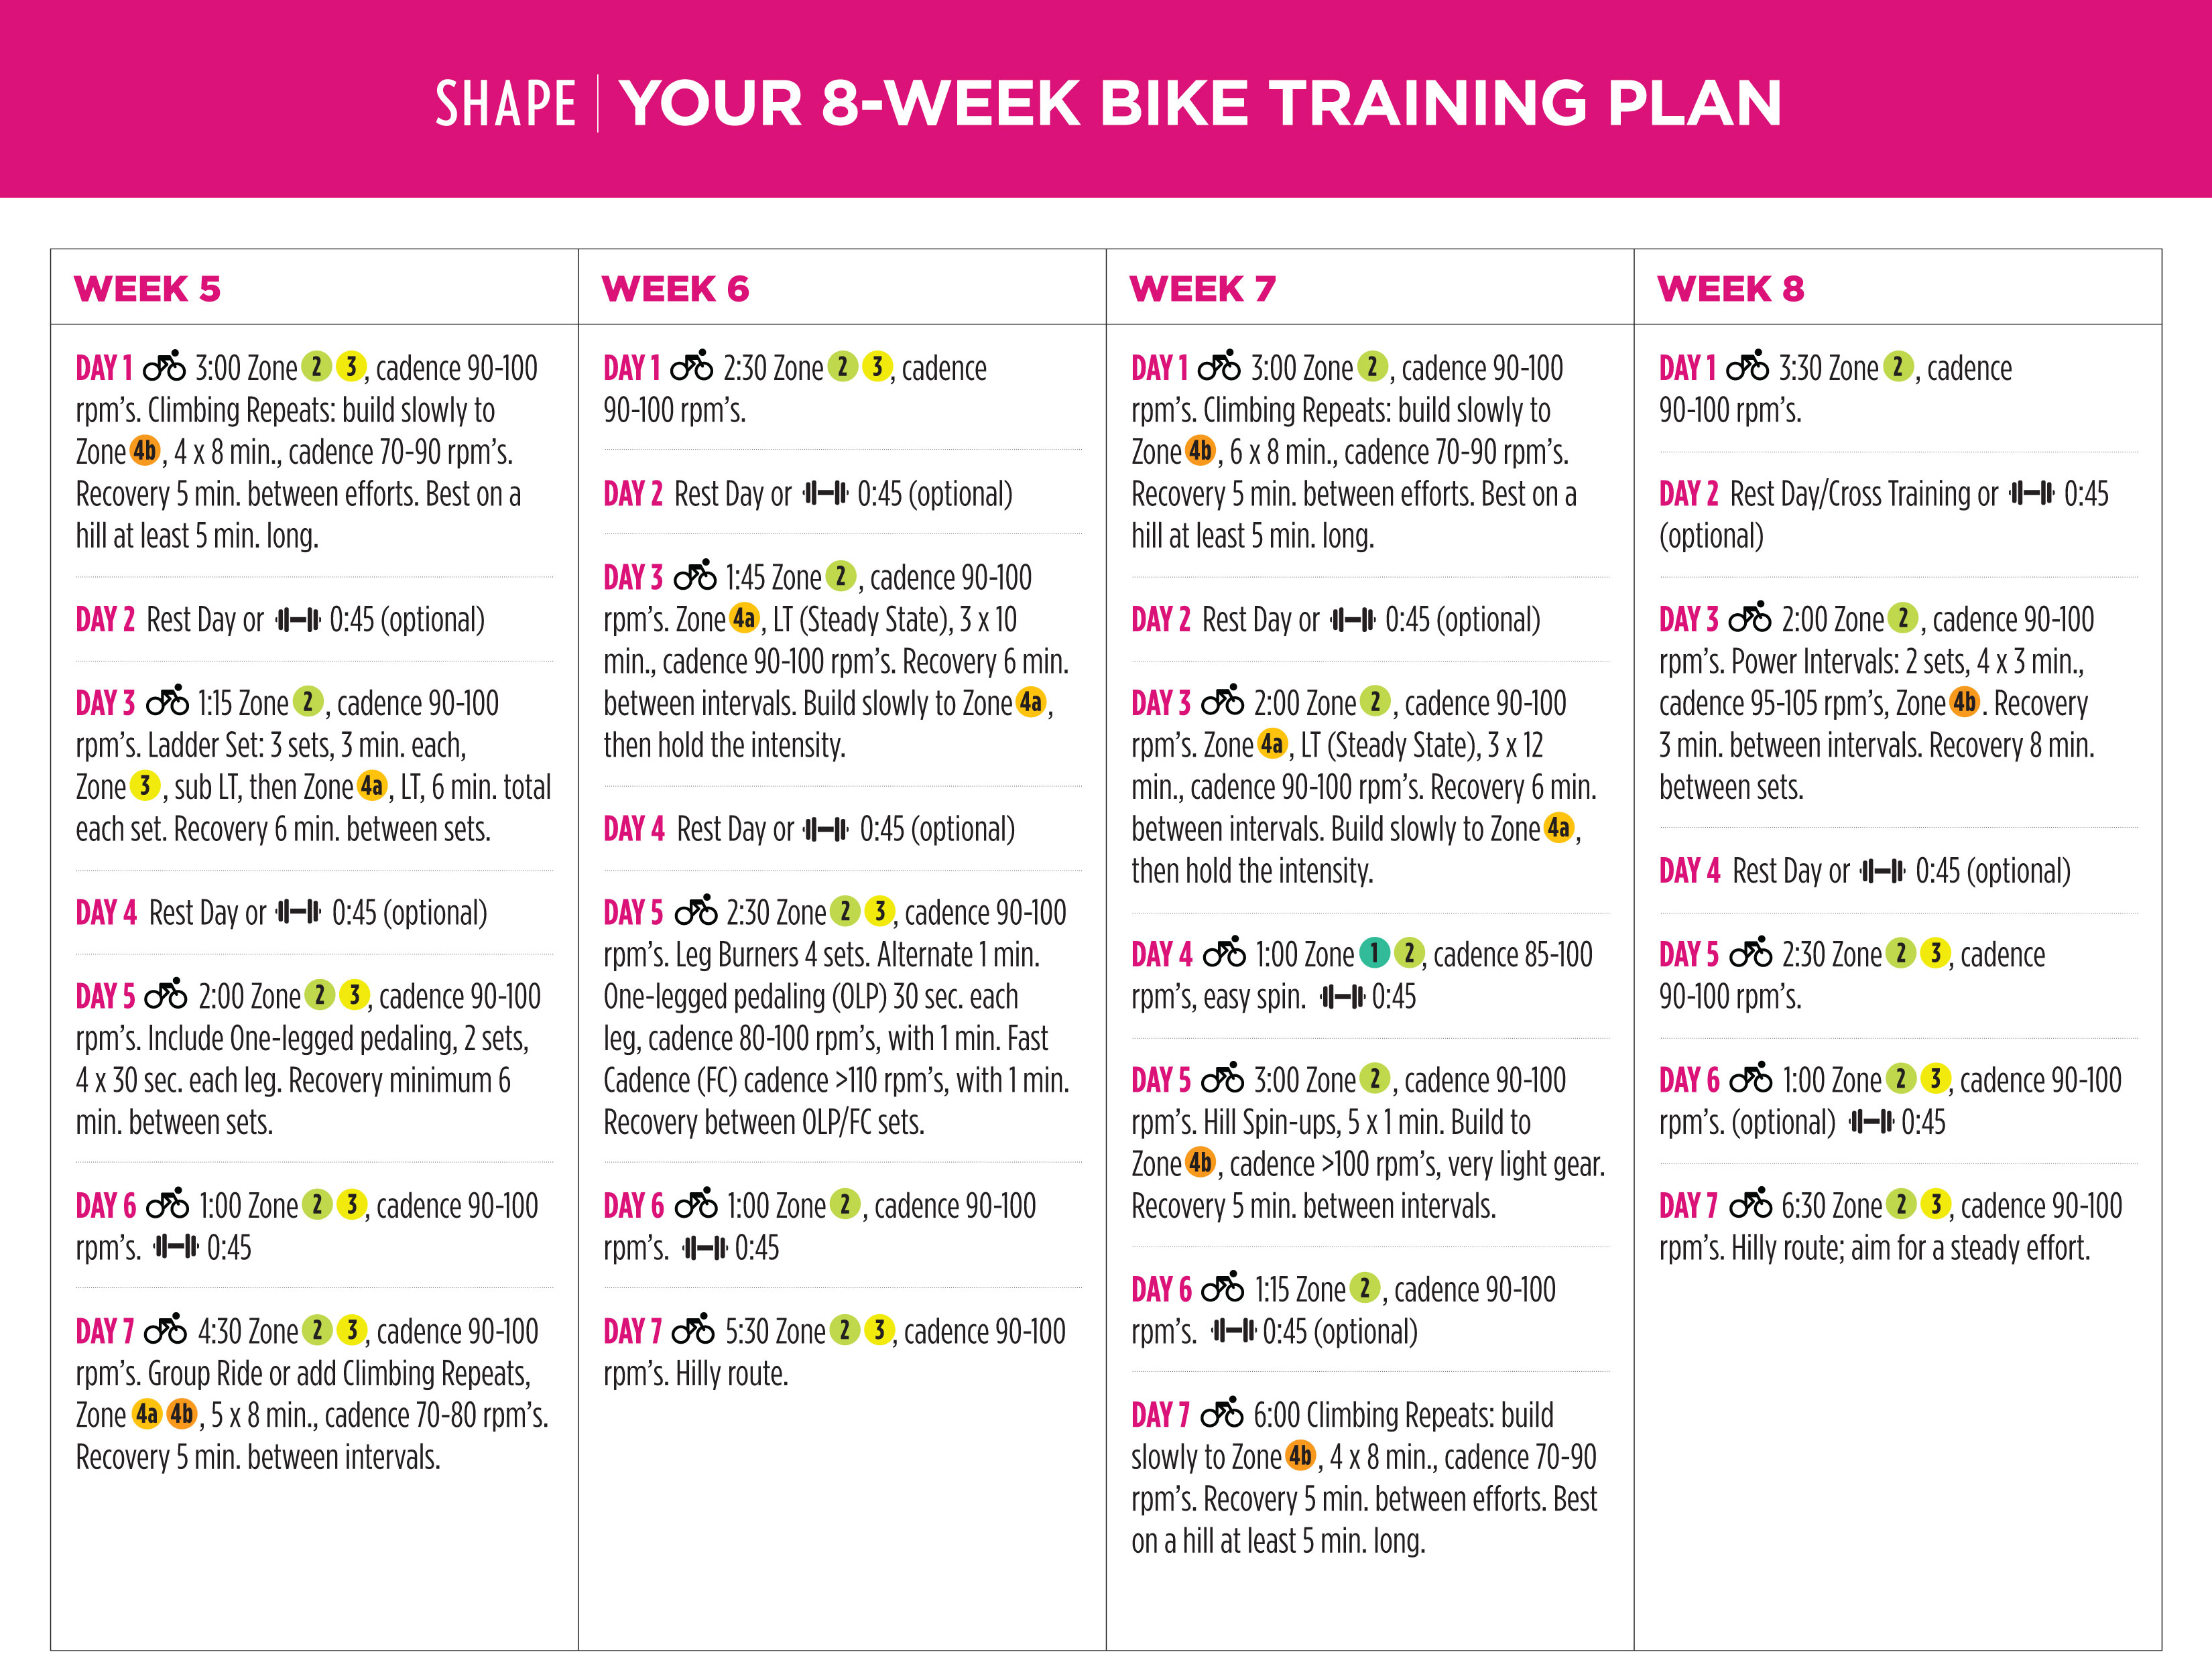 Cycling Training Plans: 8-Week Bike Training Plan | Shape ...